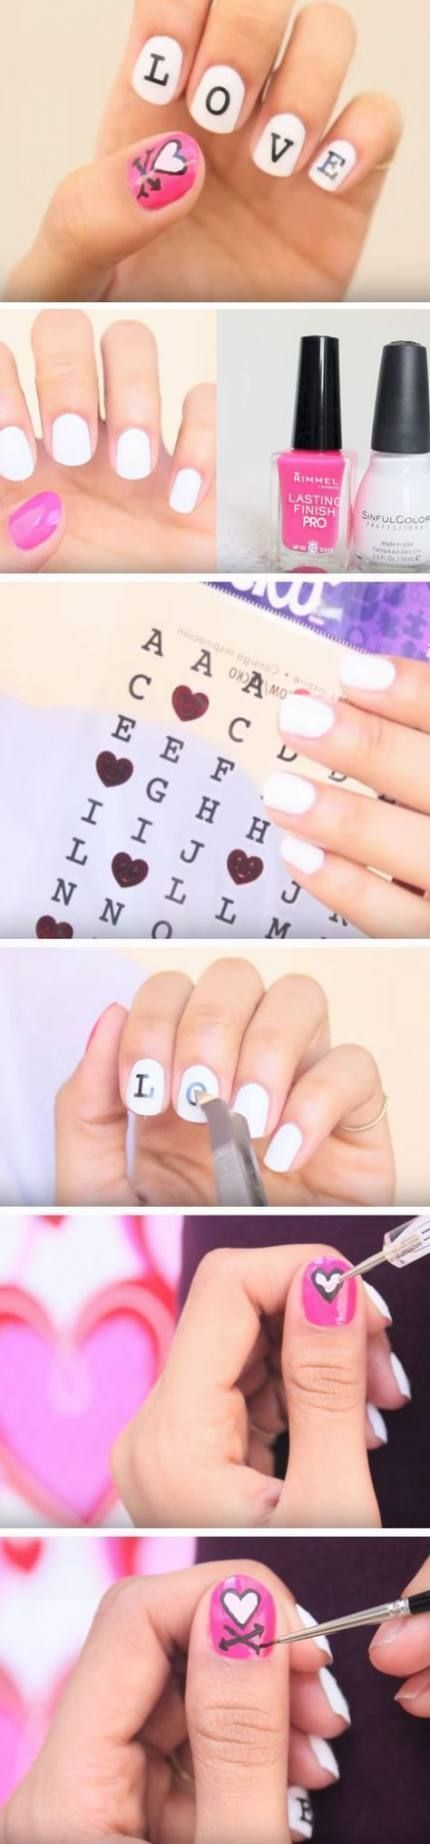 Summer Nails with rhinestones